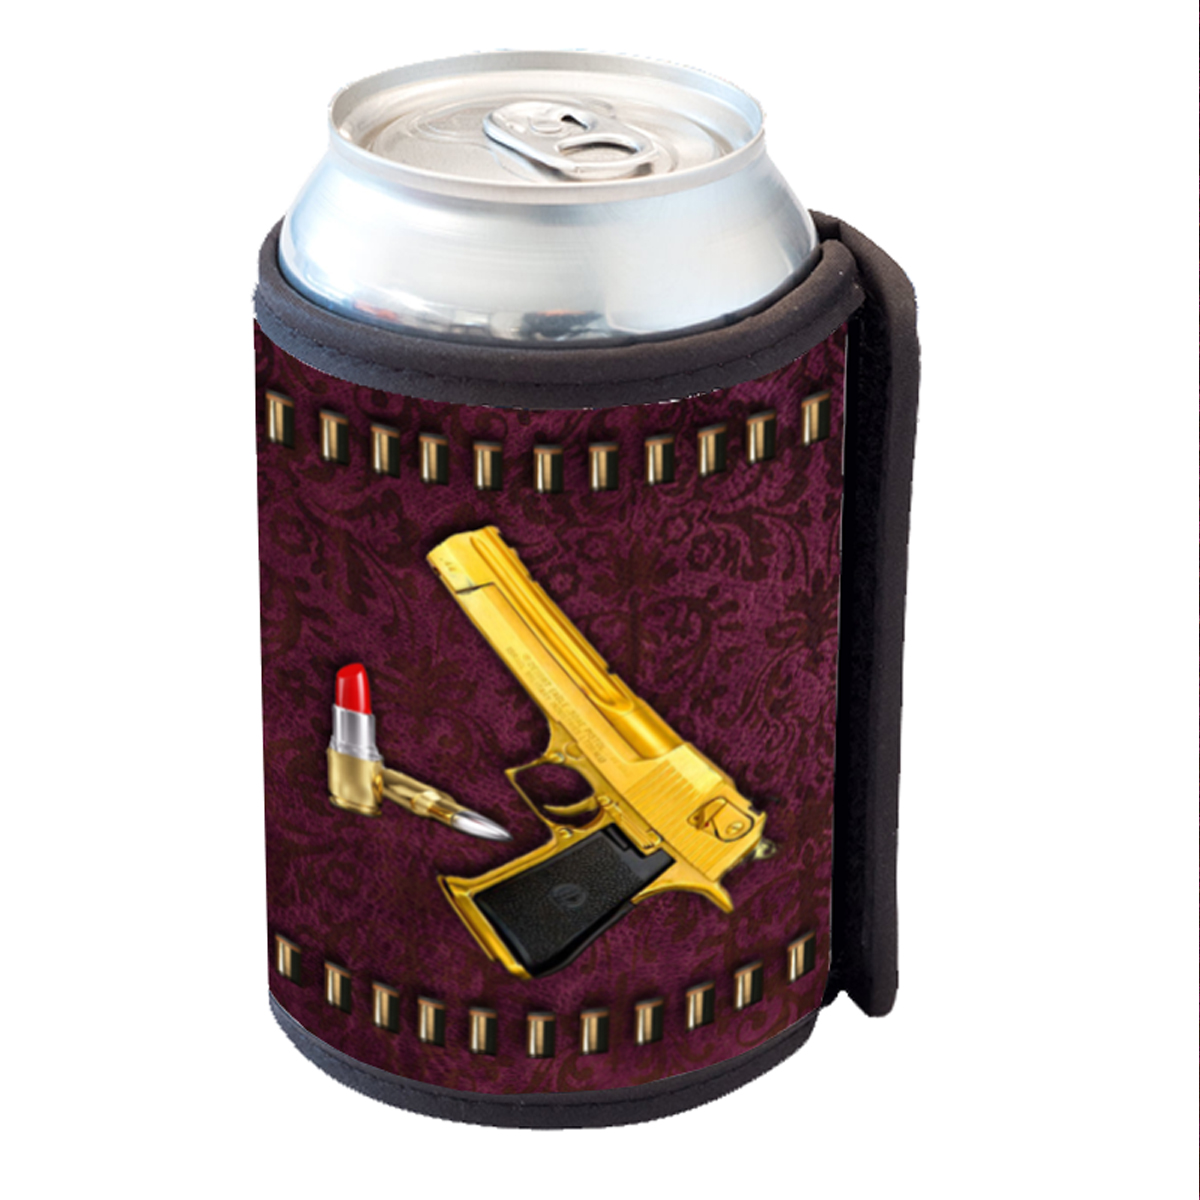 KuzmarK Insulated Drink Can Cooler Hugger - Designer Gold Gun